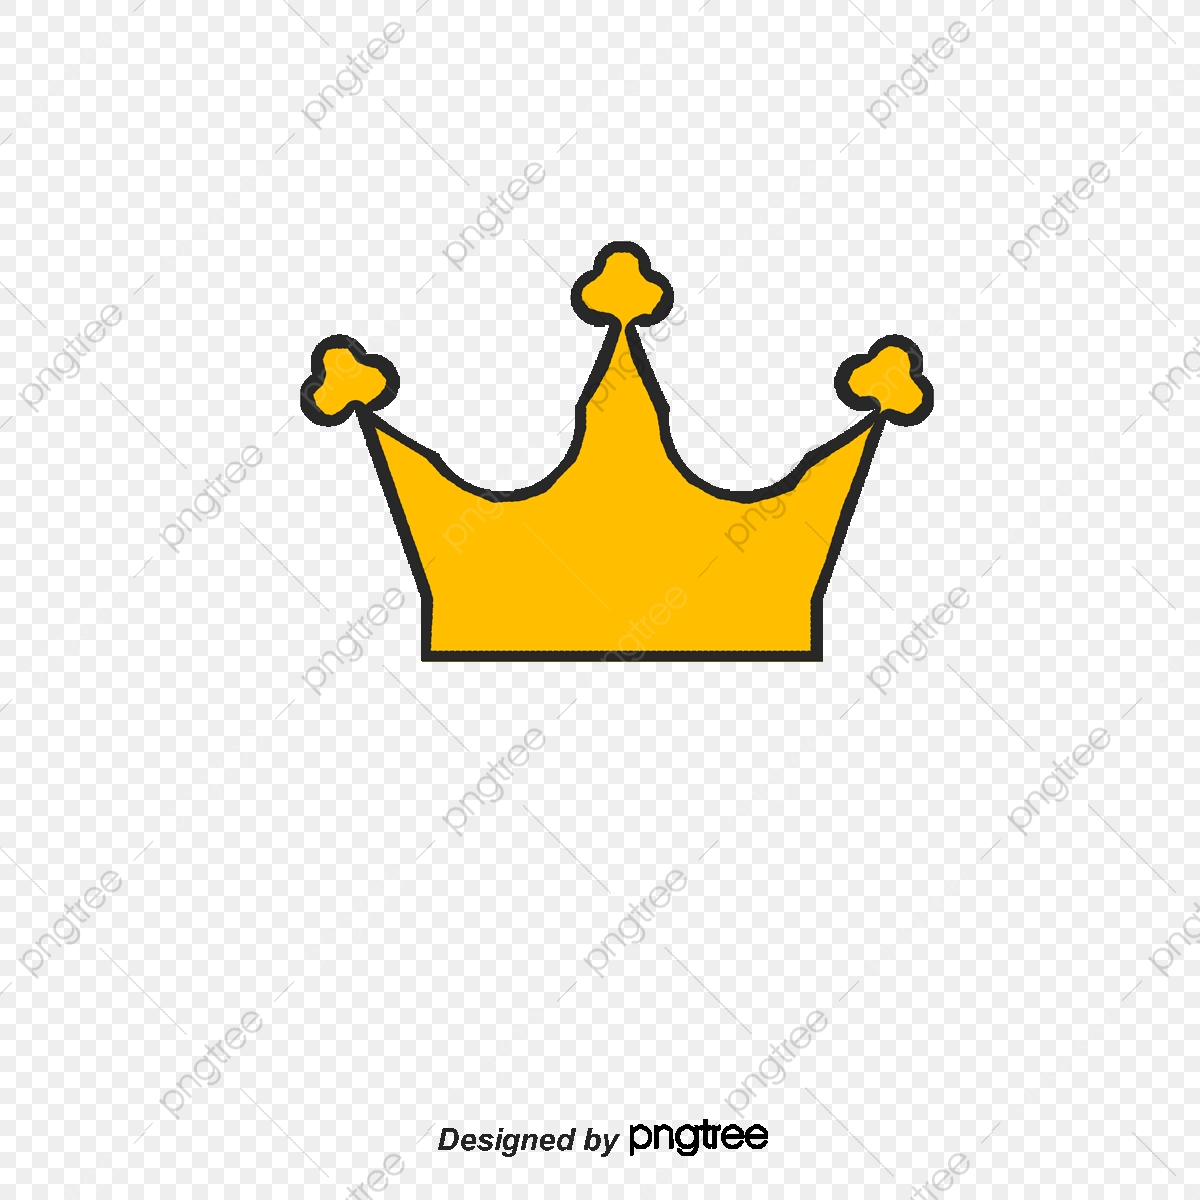 Cartoon Crown Png Images Vector And Psd Files Free Download On Pngtree Pin amazing png images that you like. https pngtree com freepng cartoon crown 3517736 html